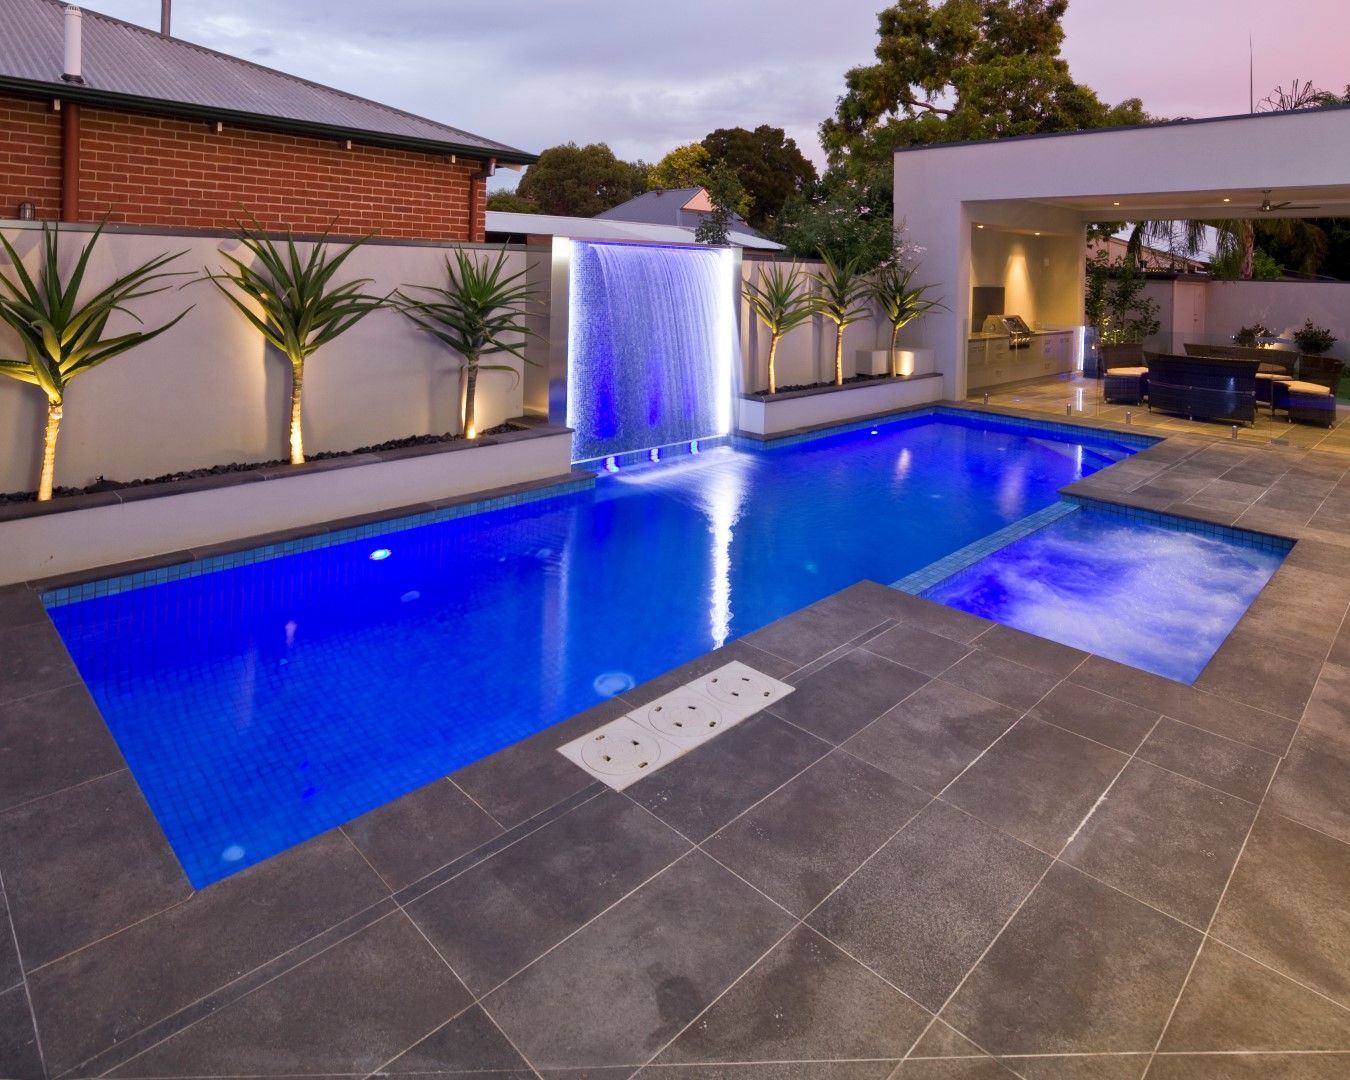 ConcretePool SwimmingPool FreedomPools